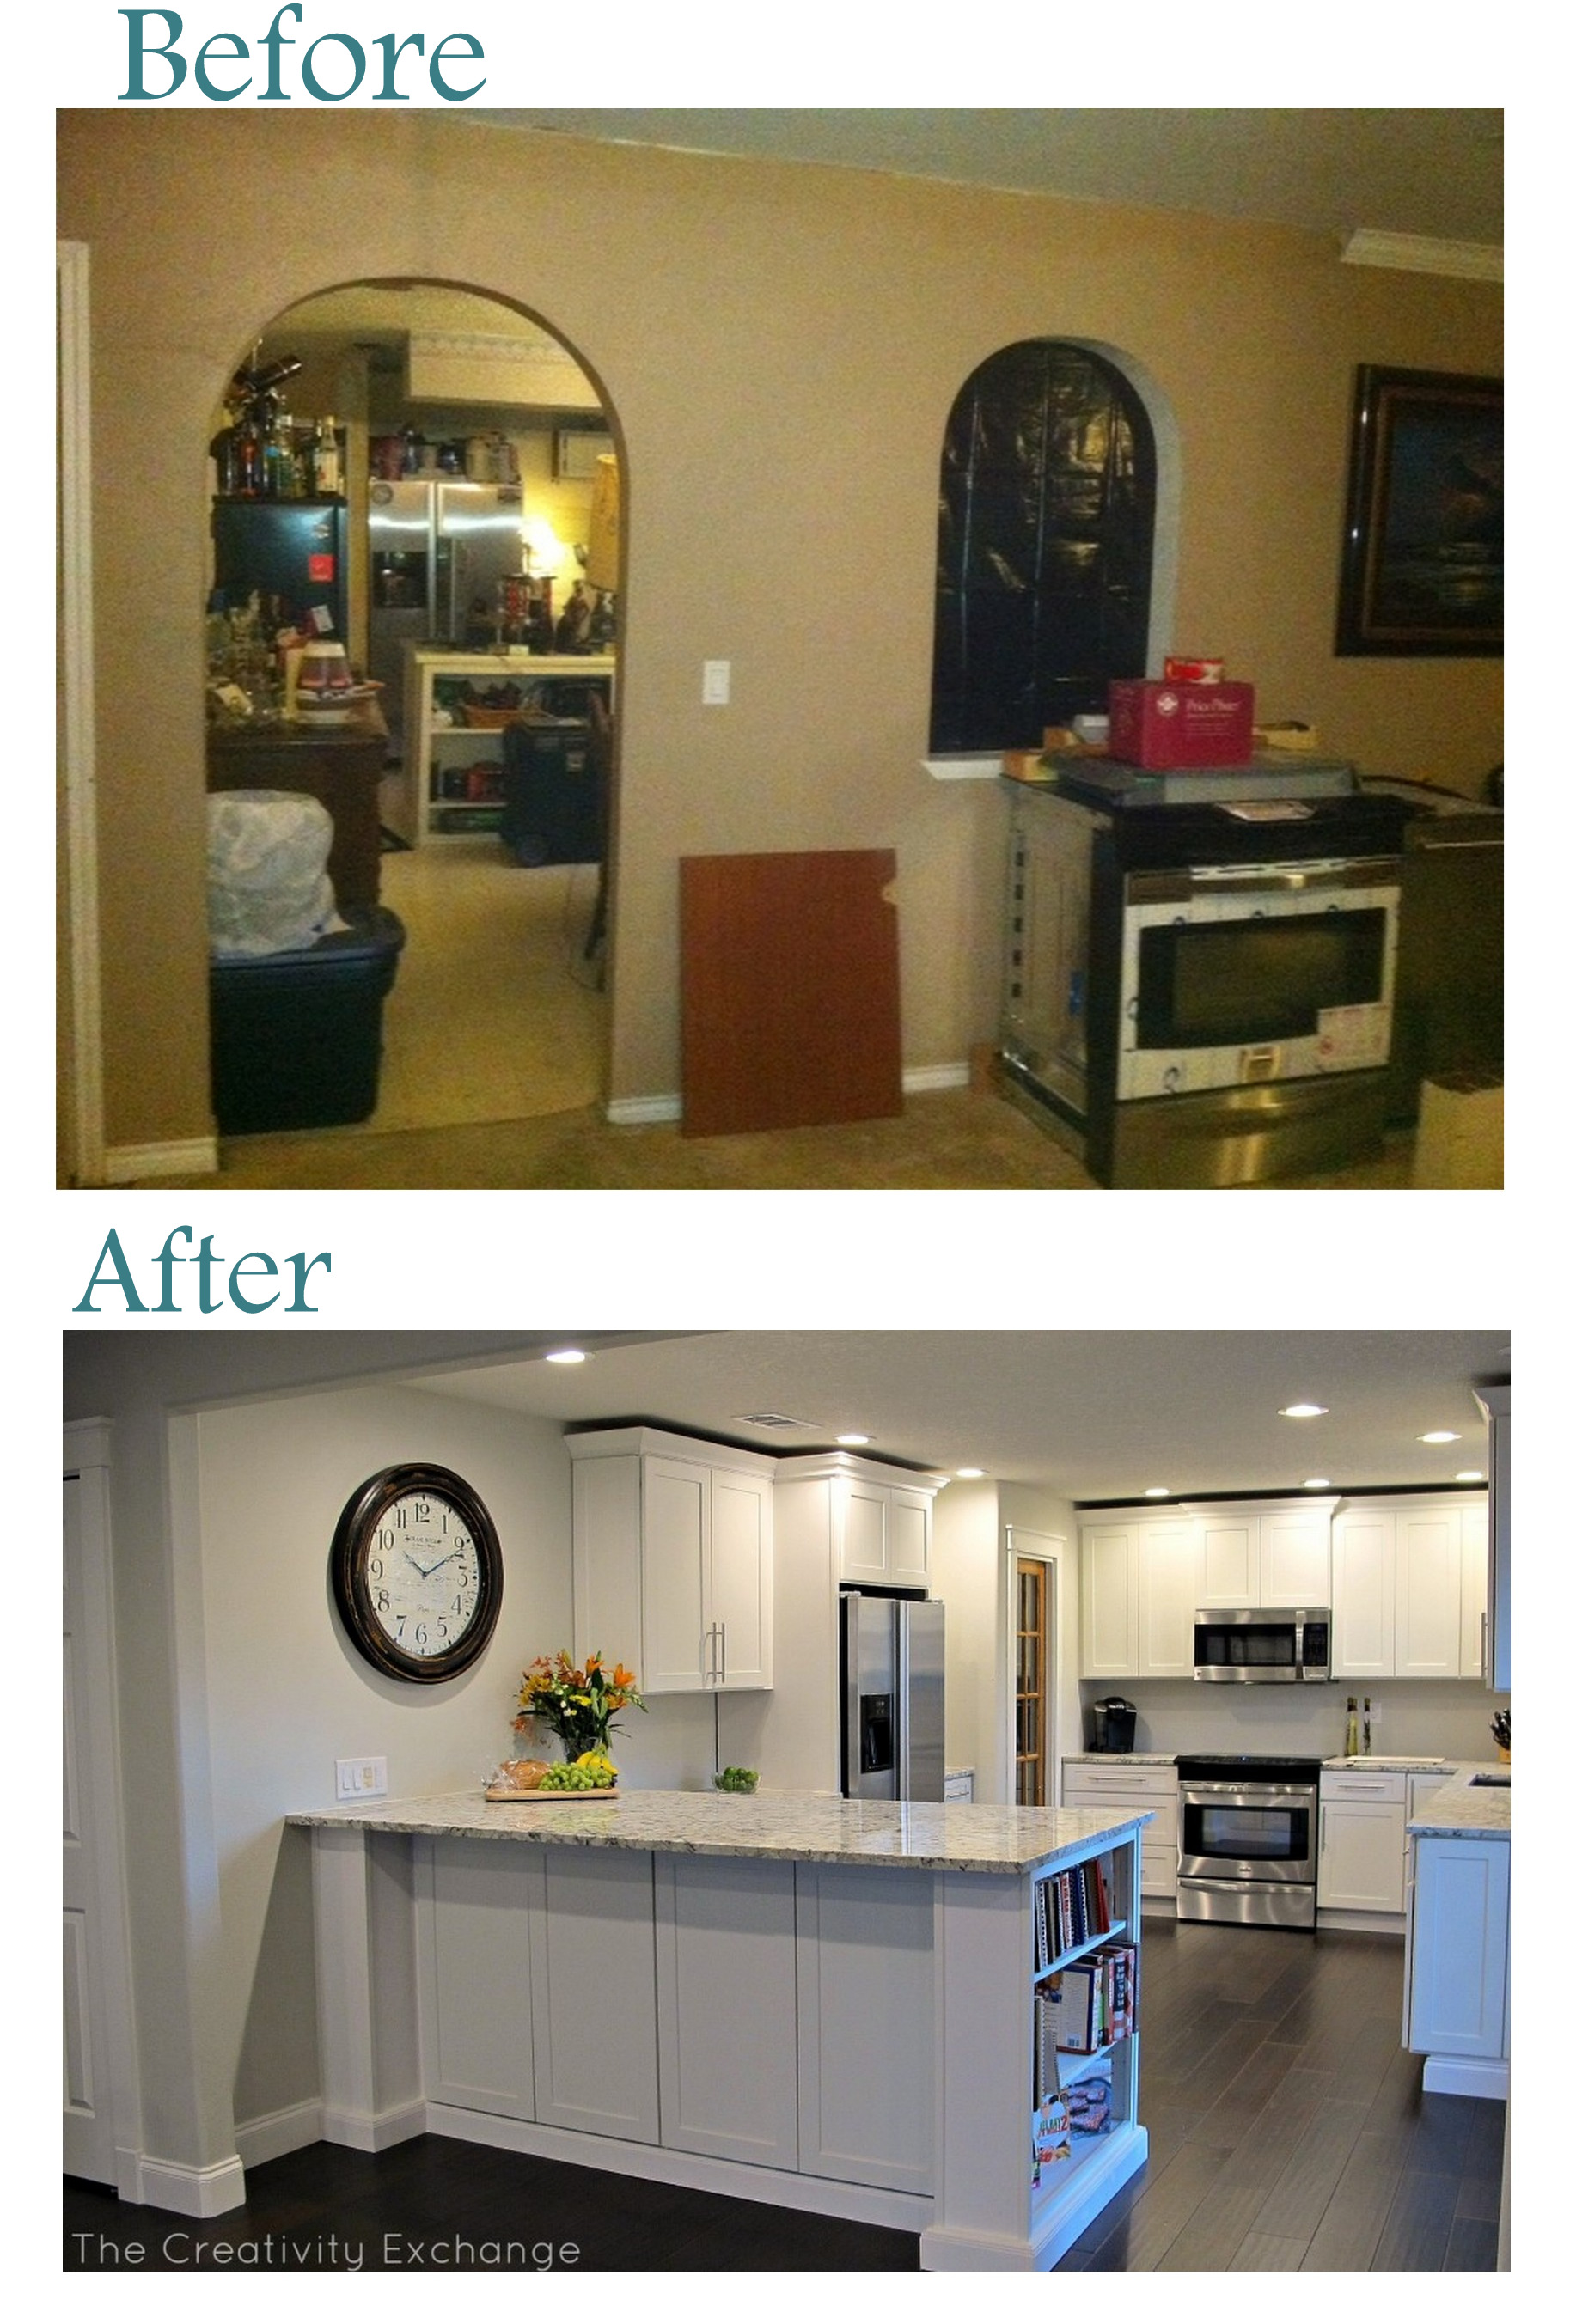 Kitchen Renovations Before And After With White Scheme Wooden Cabinets Wall Marble Countertop